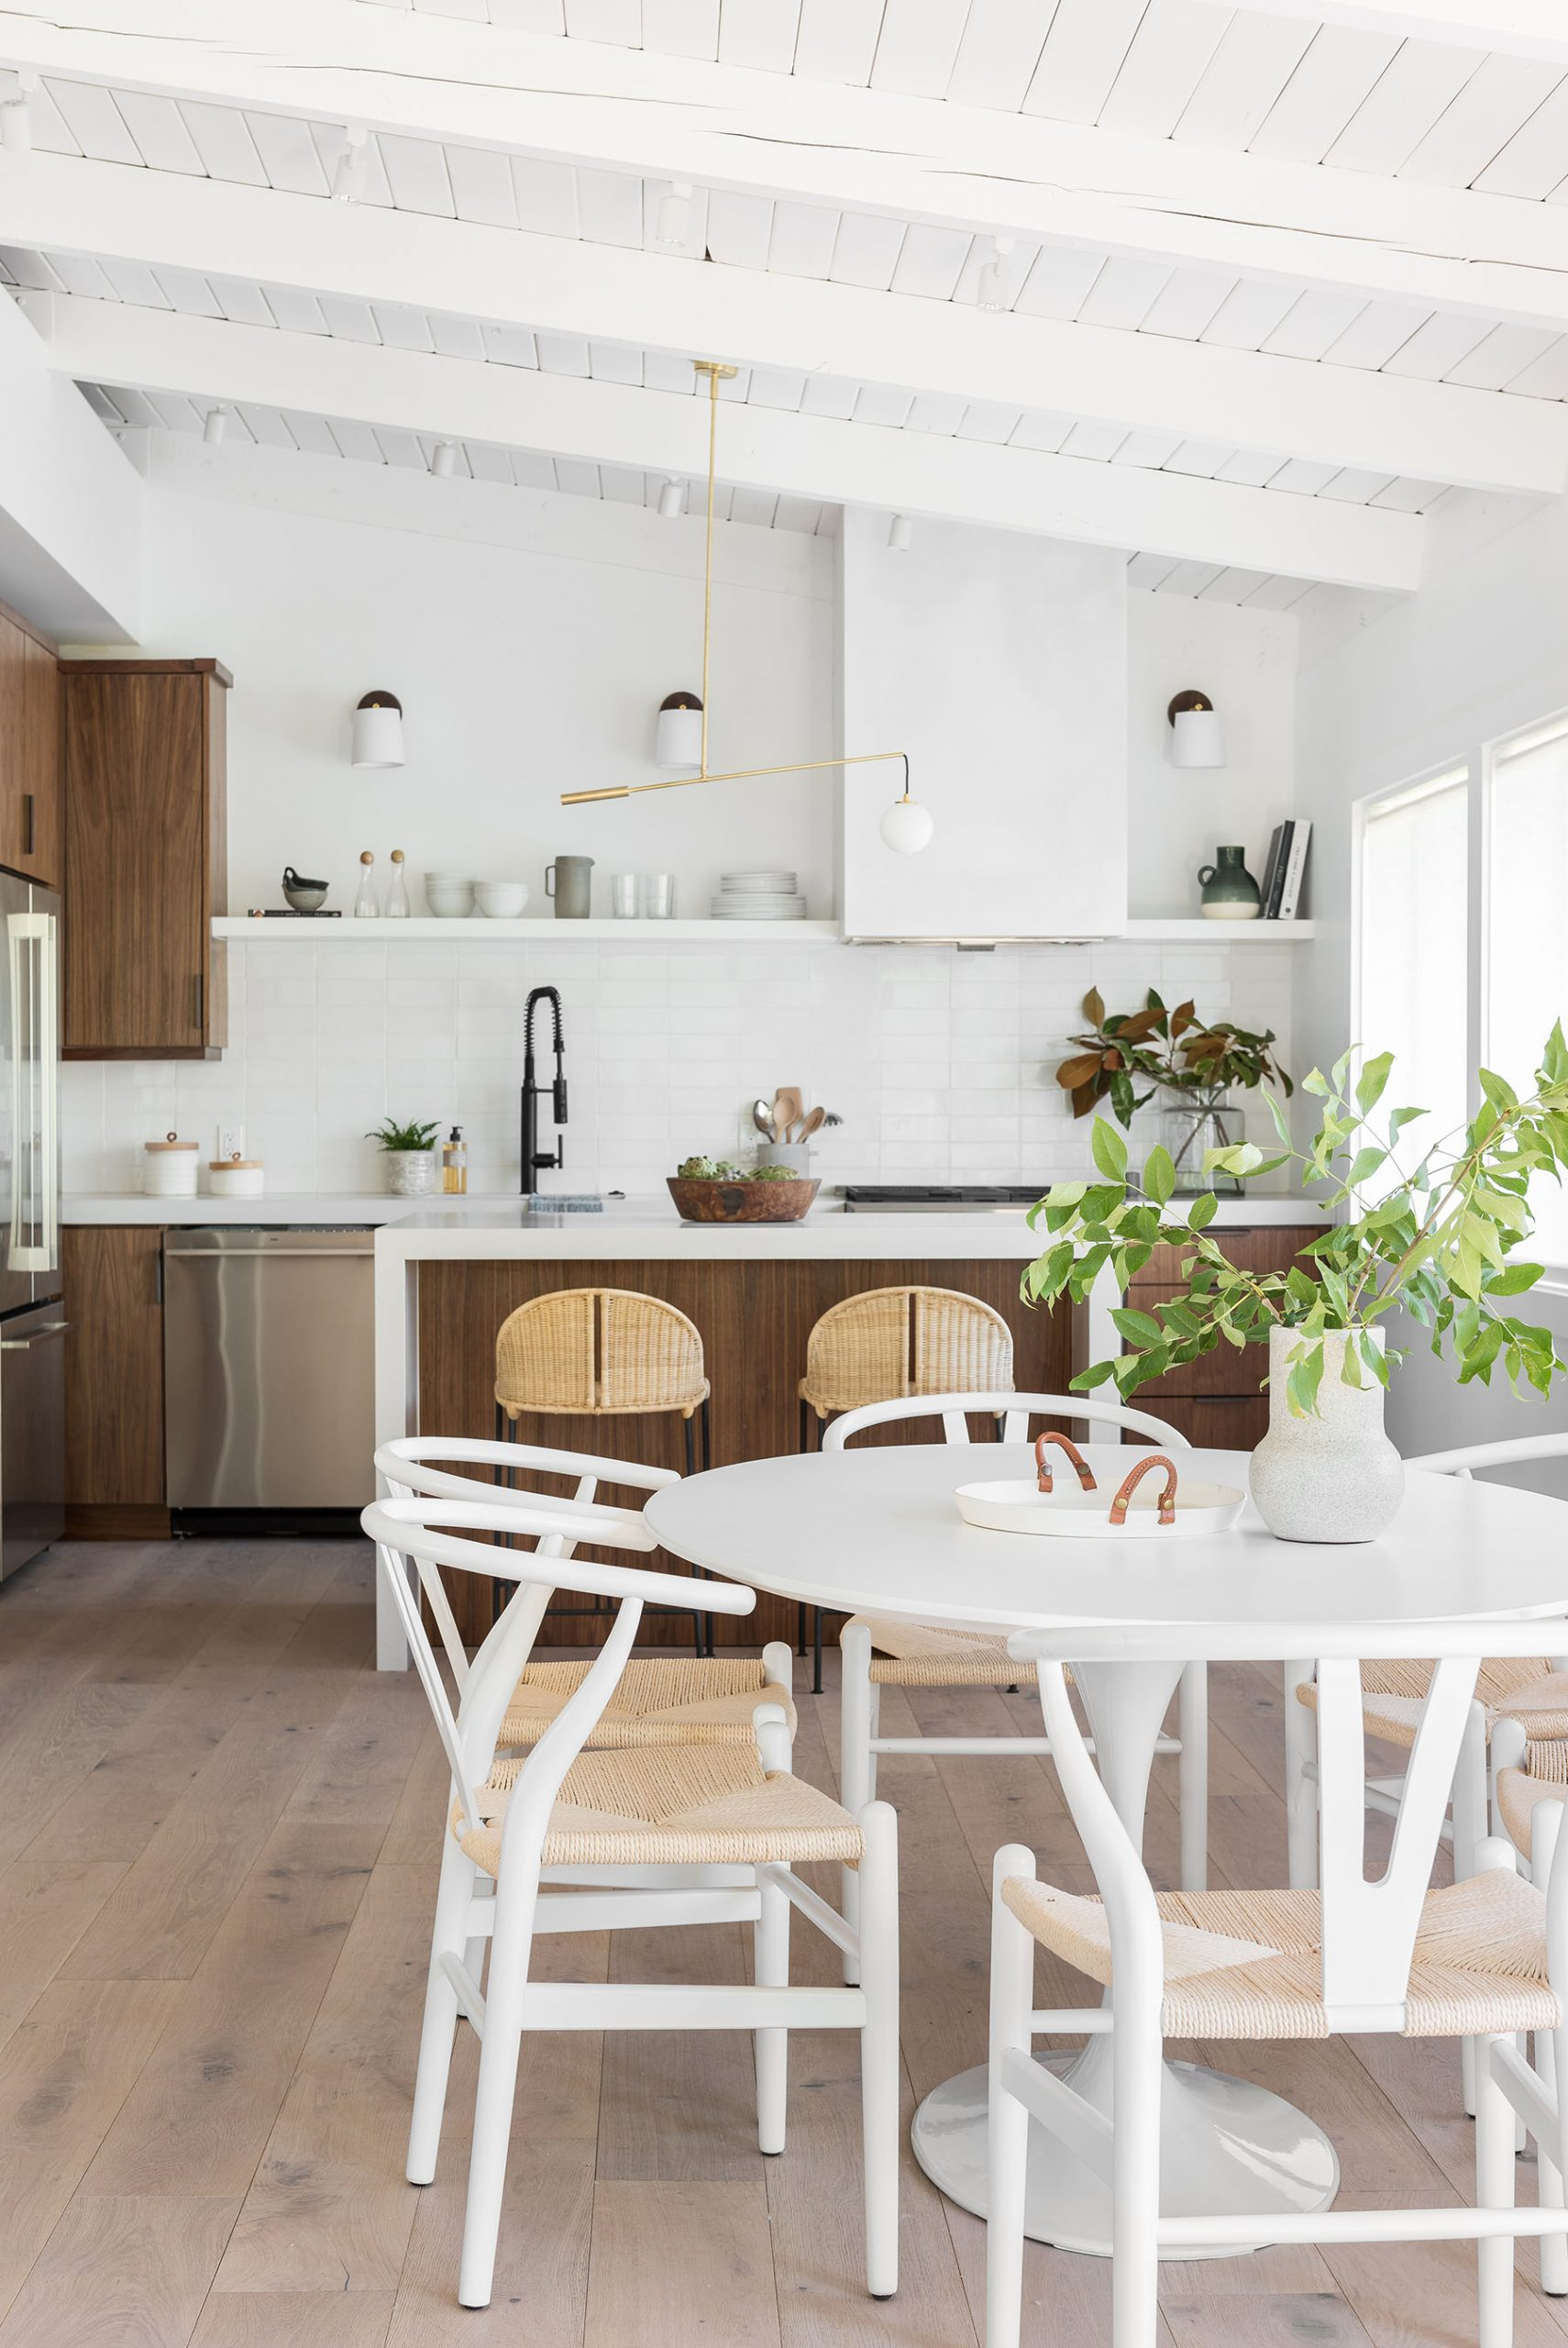 Mixing Dining Chairs And Stools: Our Tips